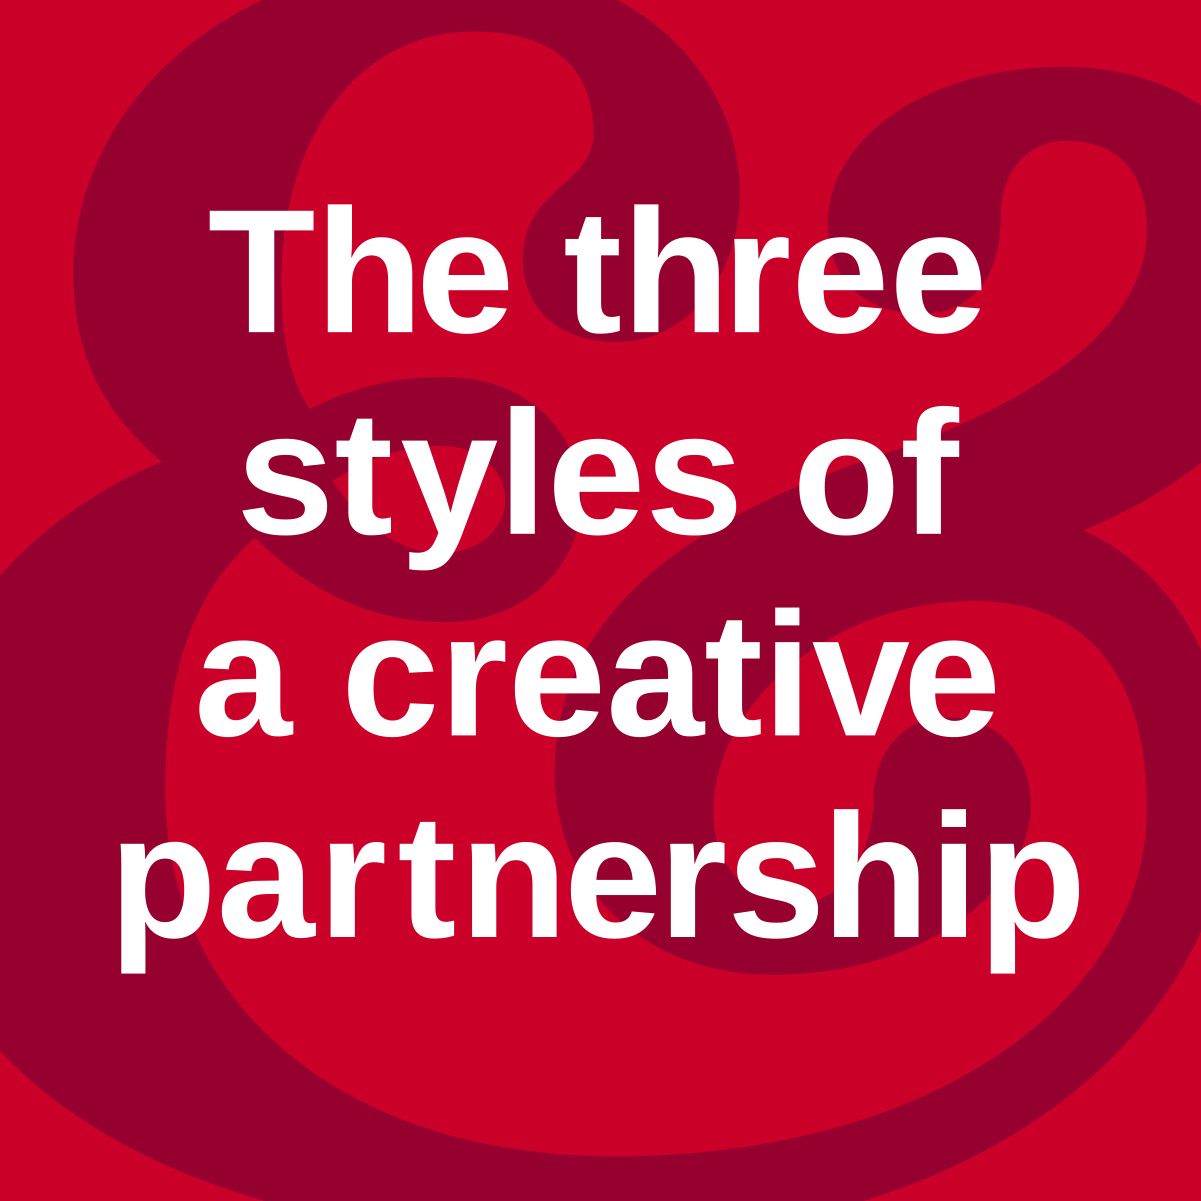 The three styles of a creative partnership